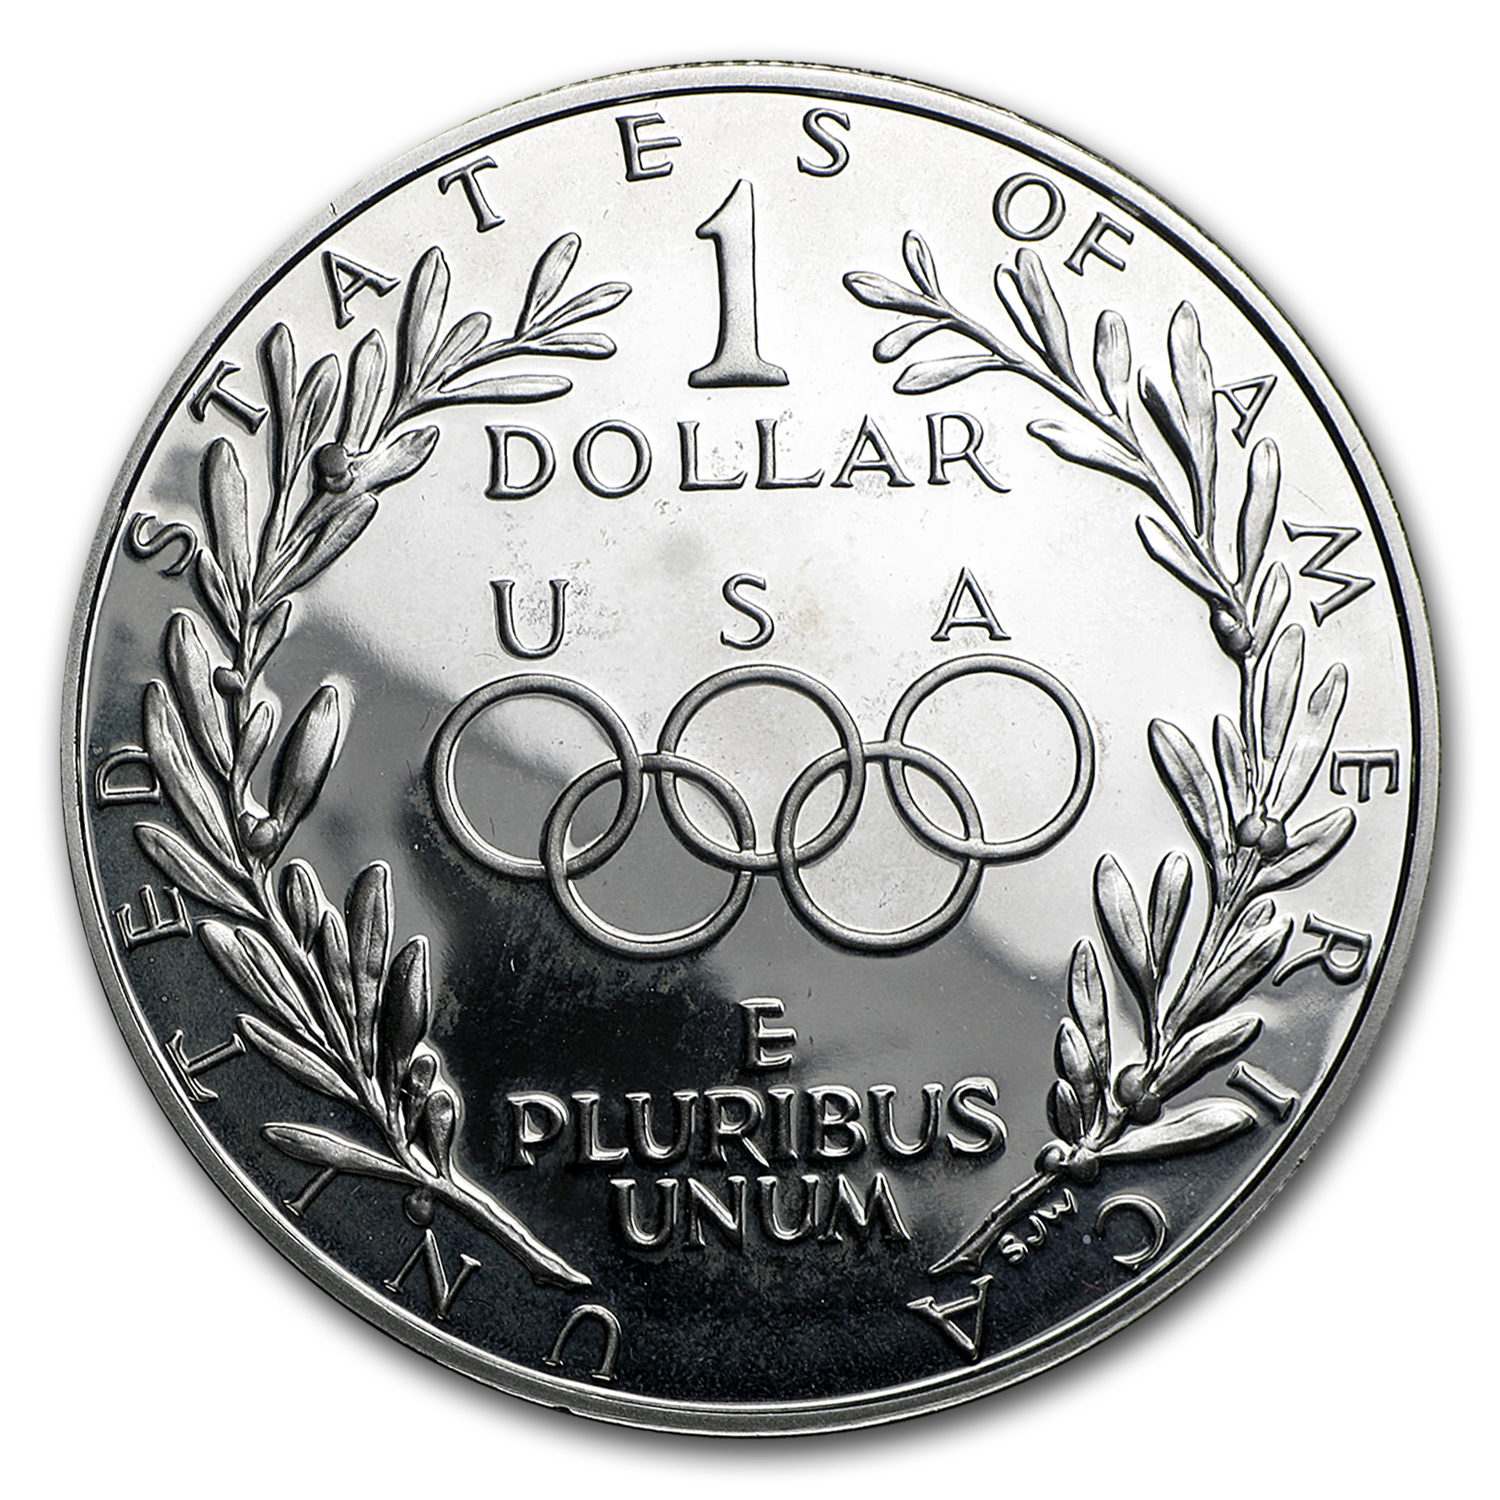 1988-S Olympic $1 Silver Commem Proof (w/Box & COA)